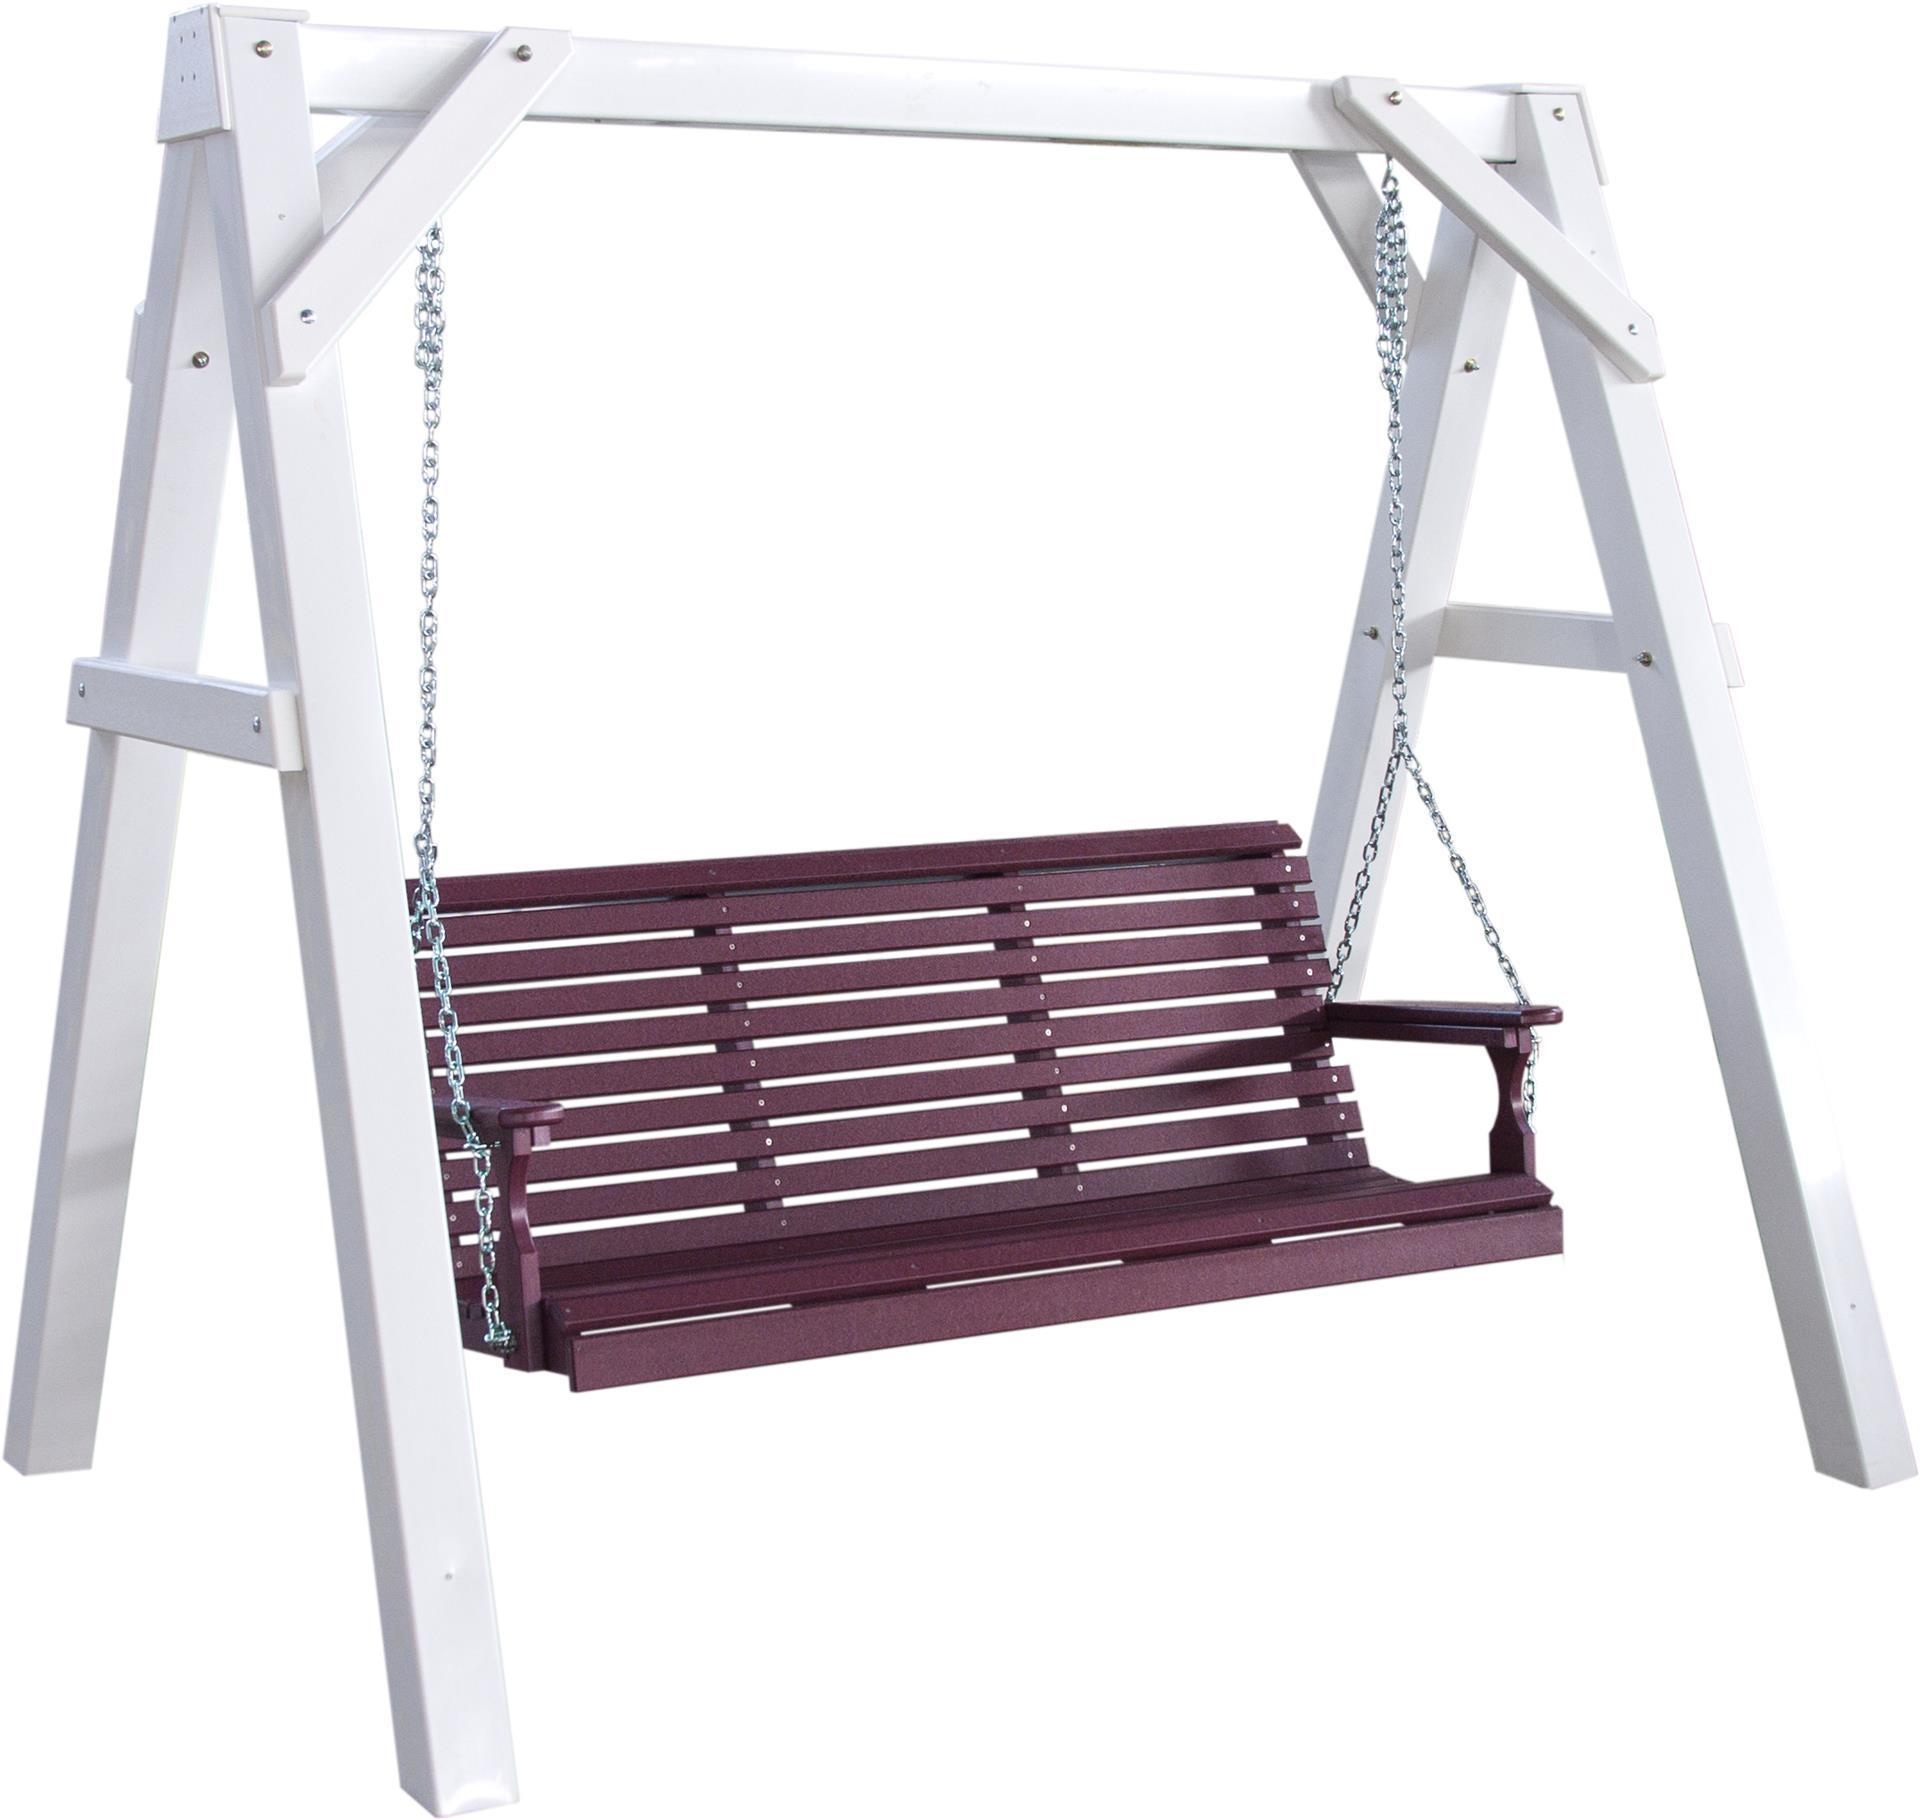 Luxcraft A Frame Vinyl Swing Stand From, Outdoor Swing Bench With Stand